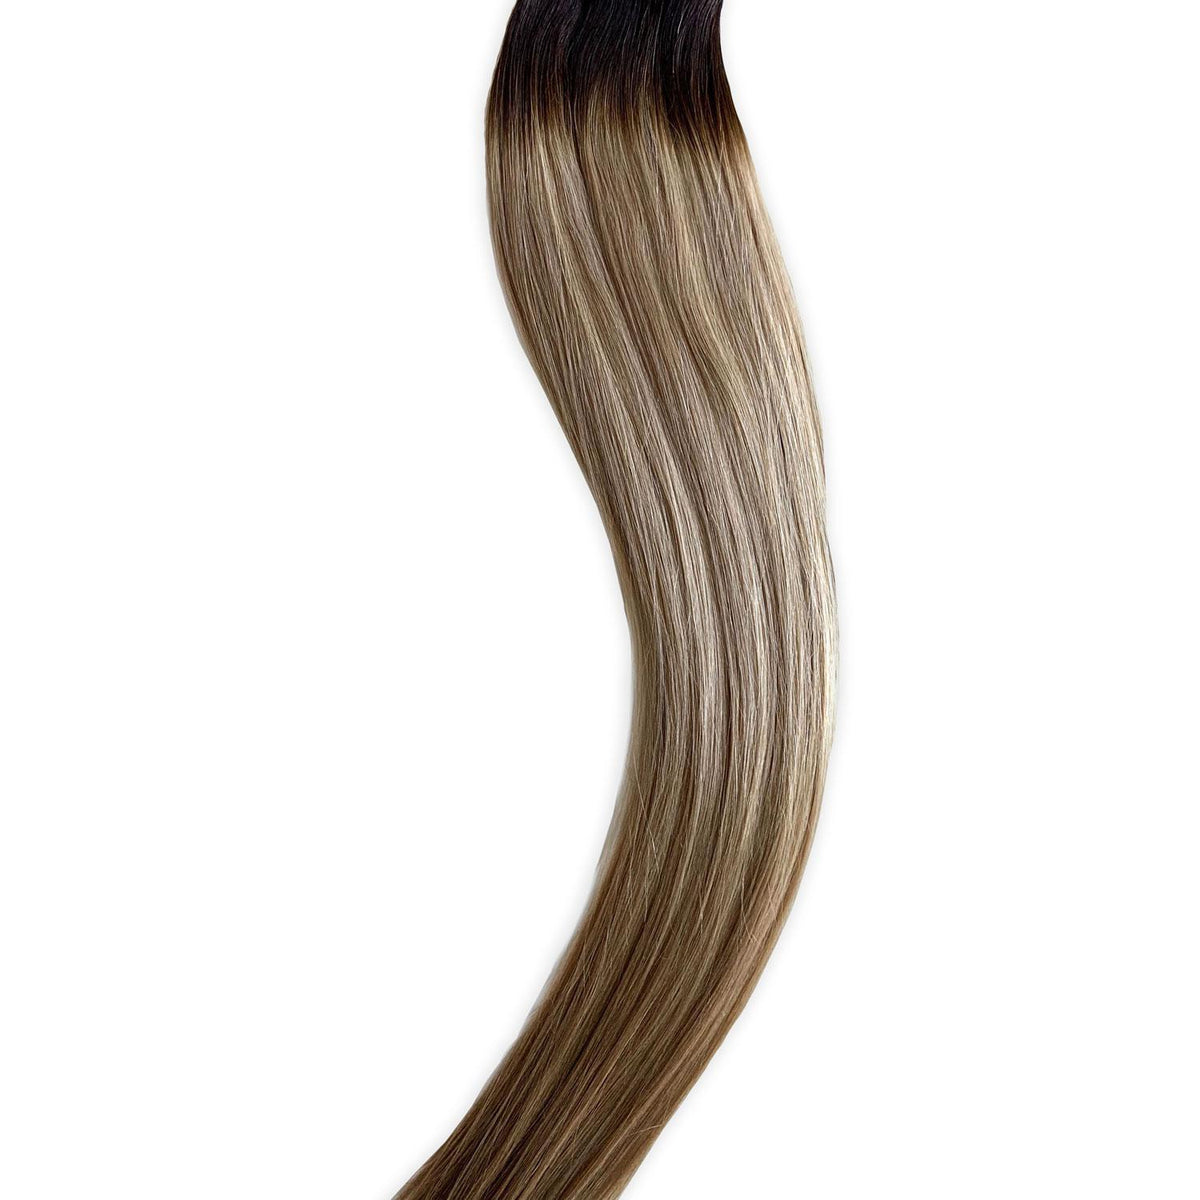 Laced Hair Hand Tied Weft Extensions Rooted #4/D10/16